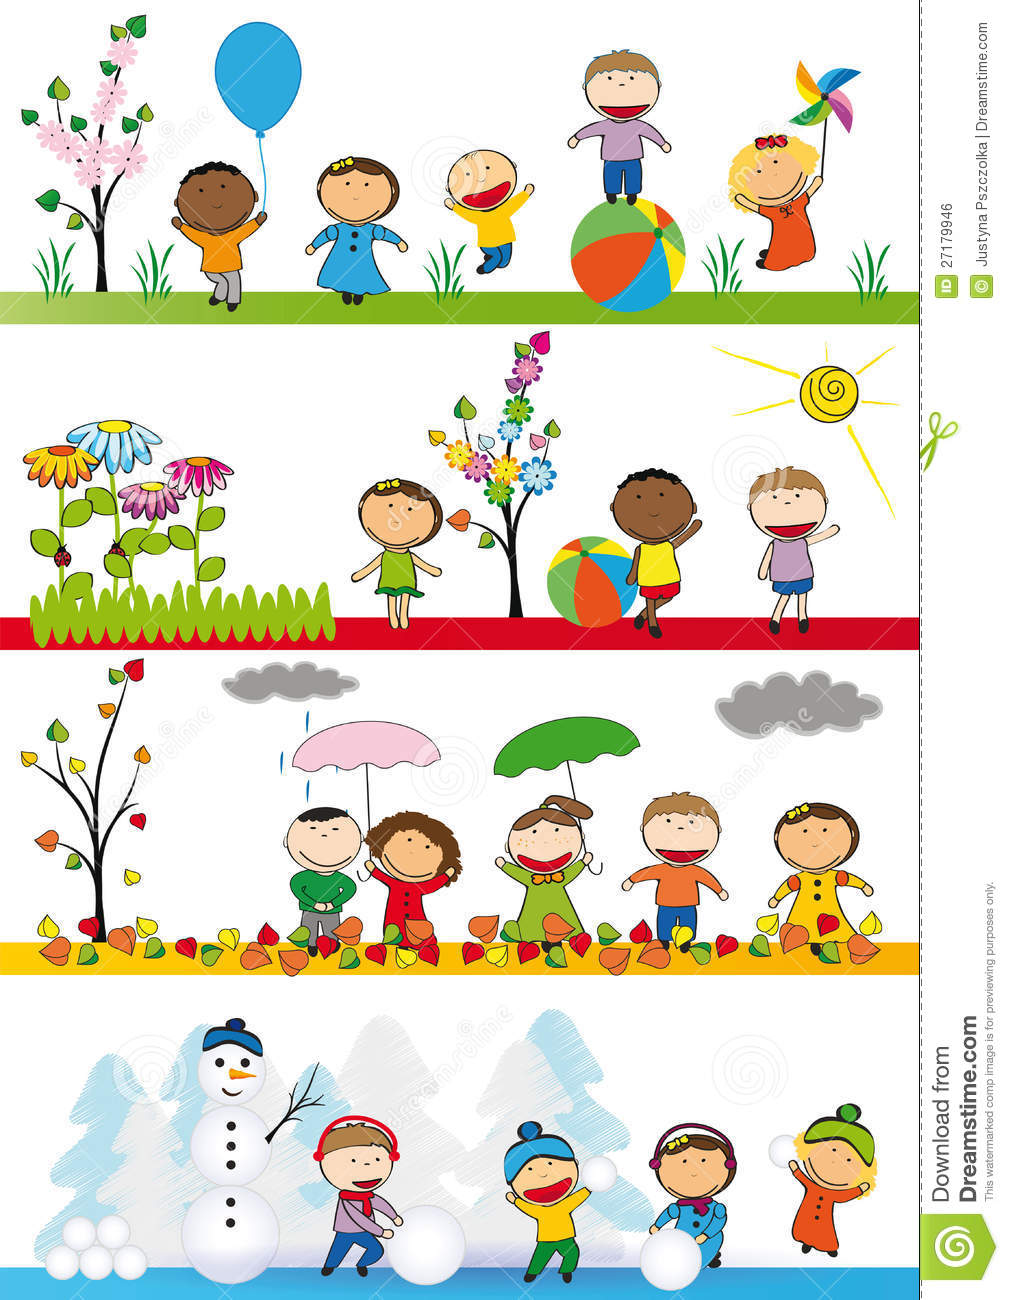 Lizenzfreies Stockbild Kinder Vierjahreszeiten Image27179946 on Winter Clothes Worksheets Printable